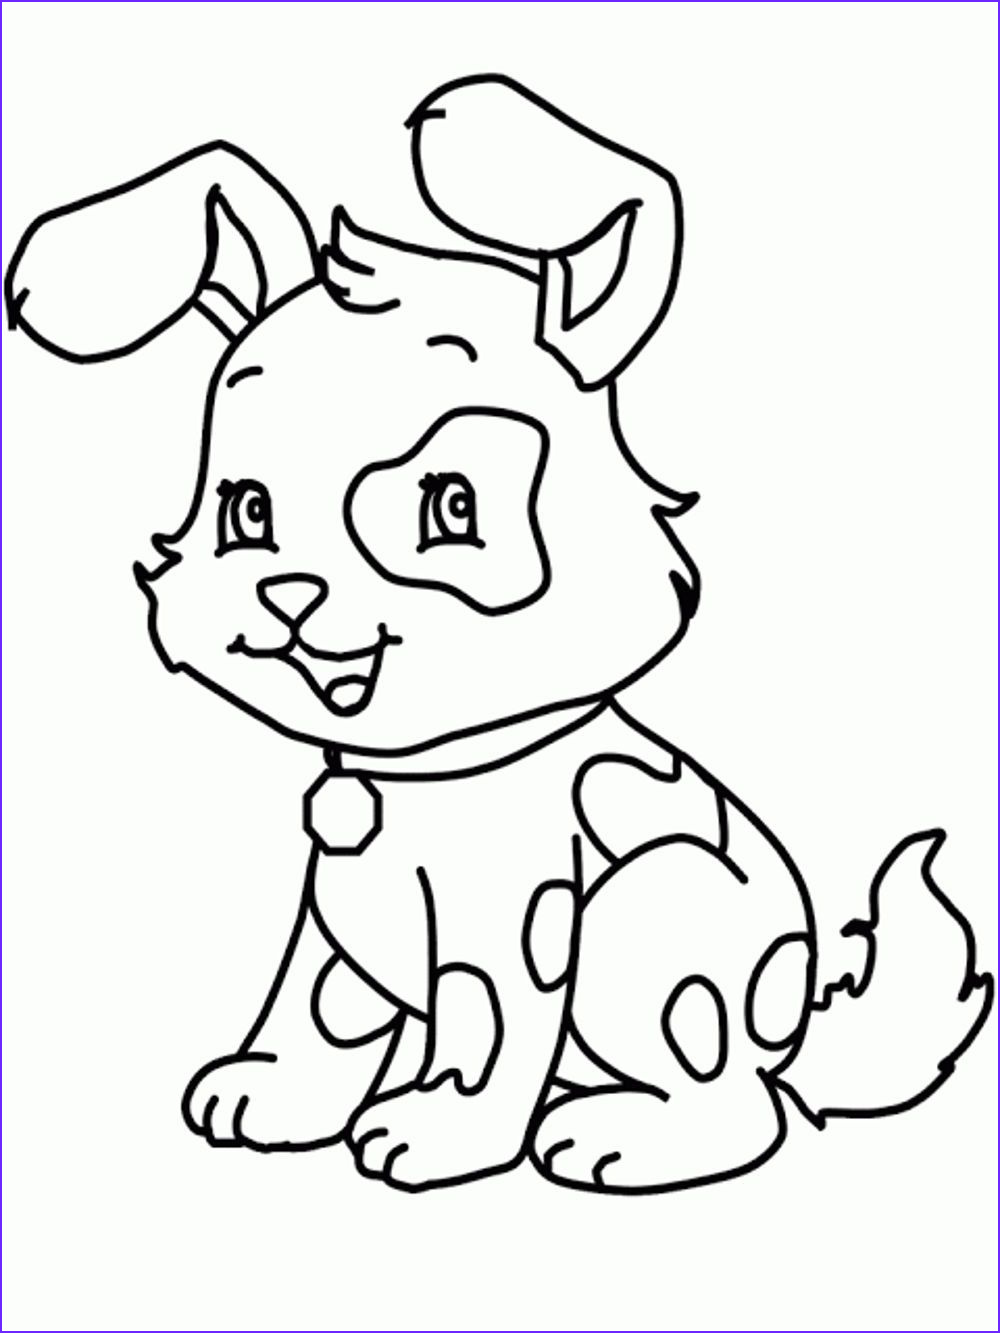 Puppy Coloring Book Beautiful Images Biscuit the Dog Coloring Pages Printable Kids Colouring